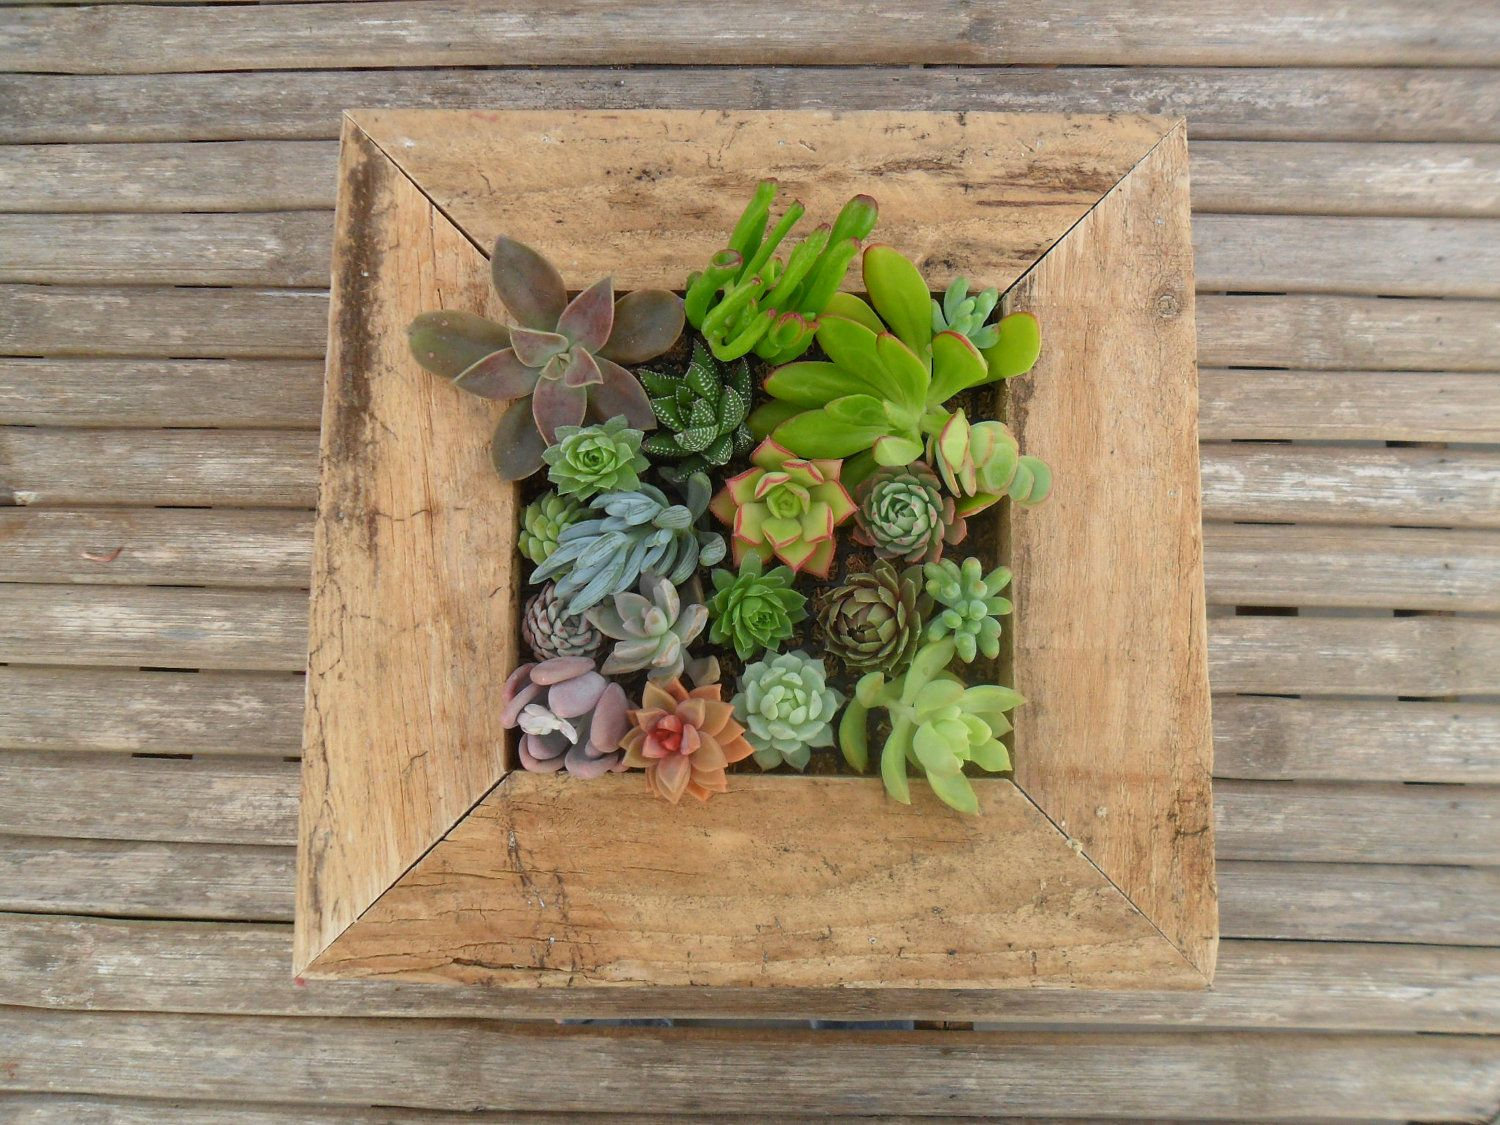 Large rustic wall art kit comes assembled with soil and moss